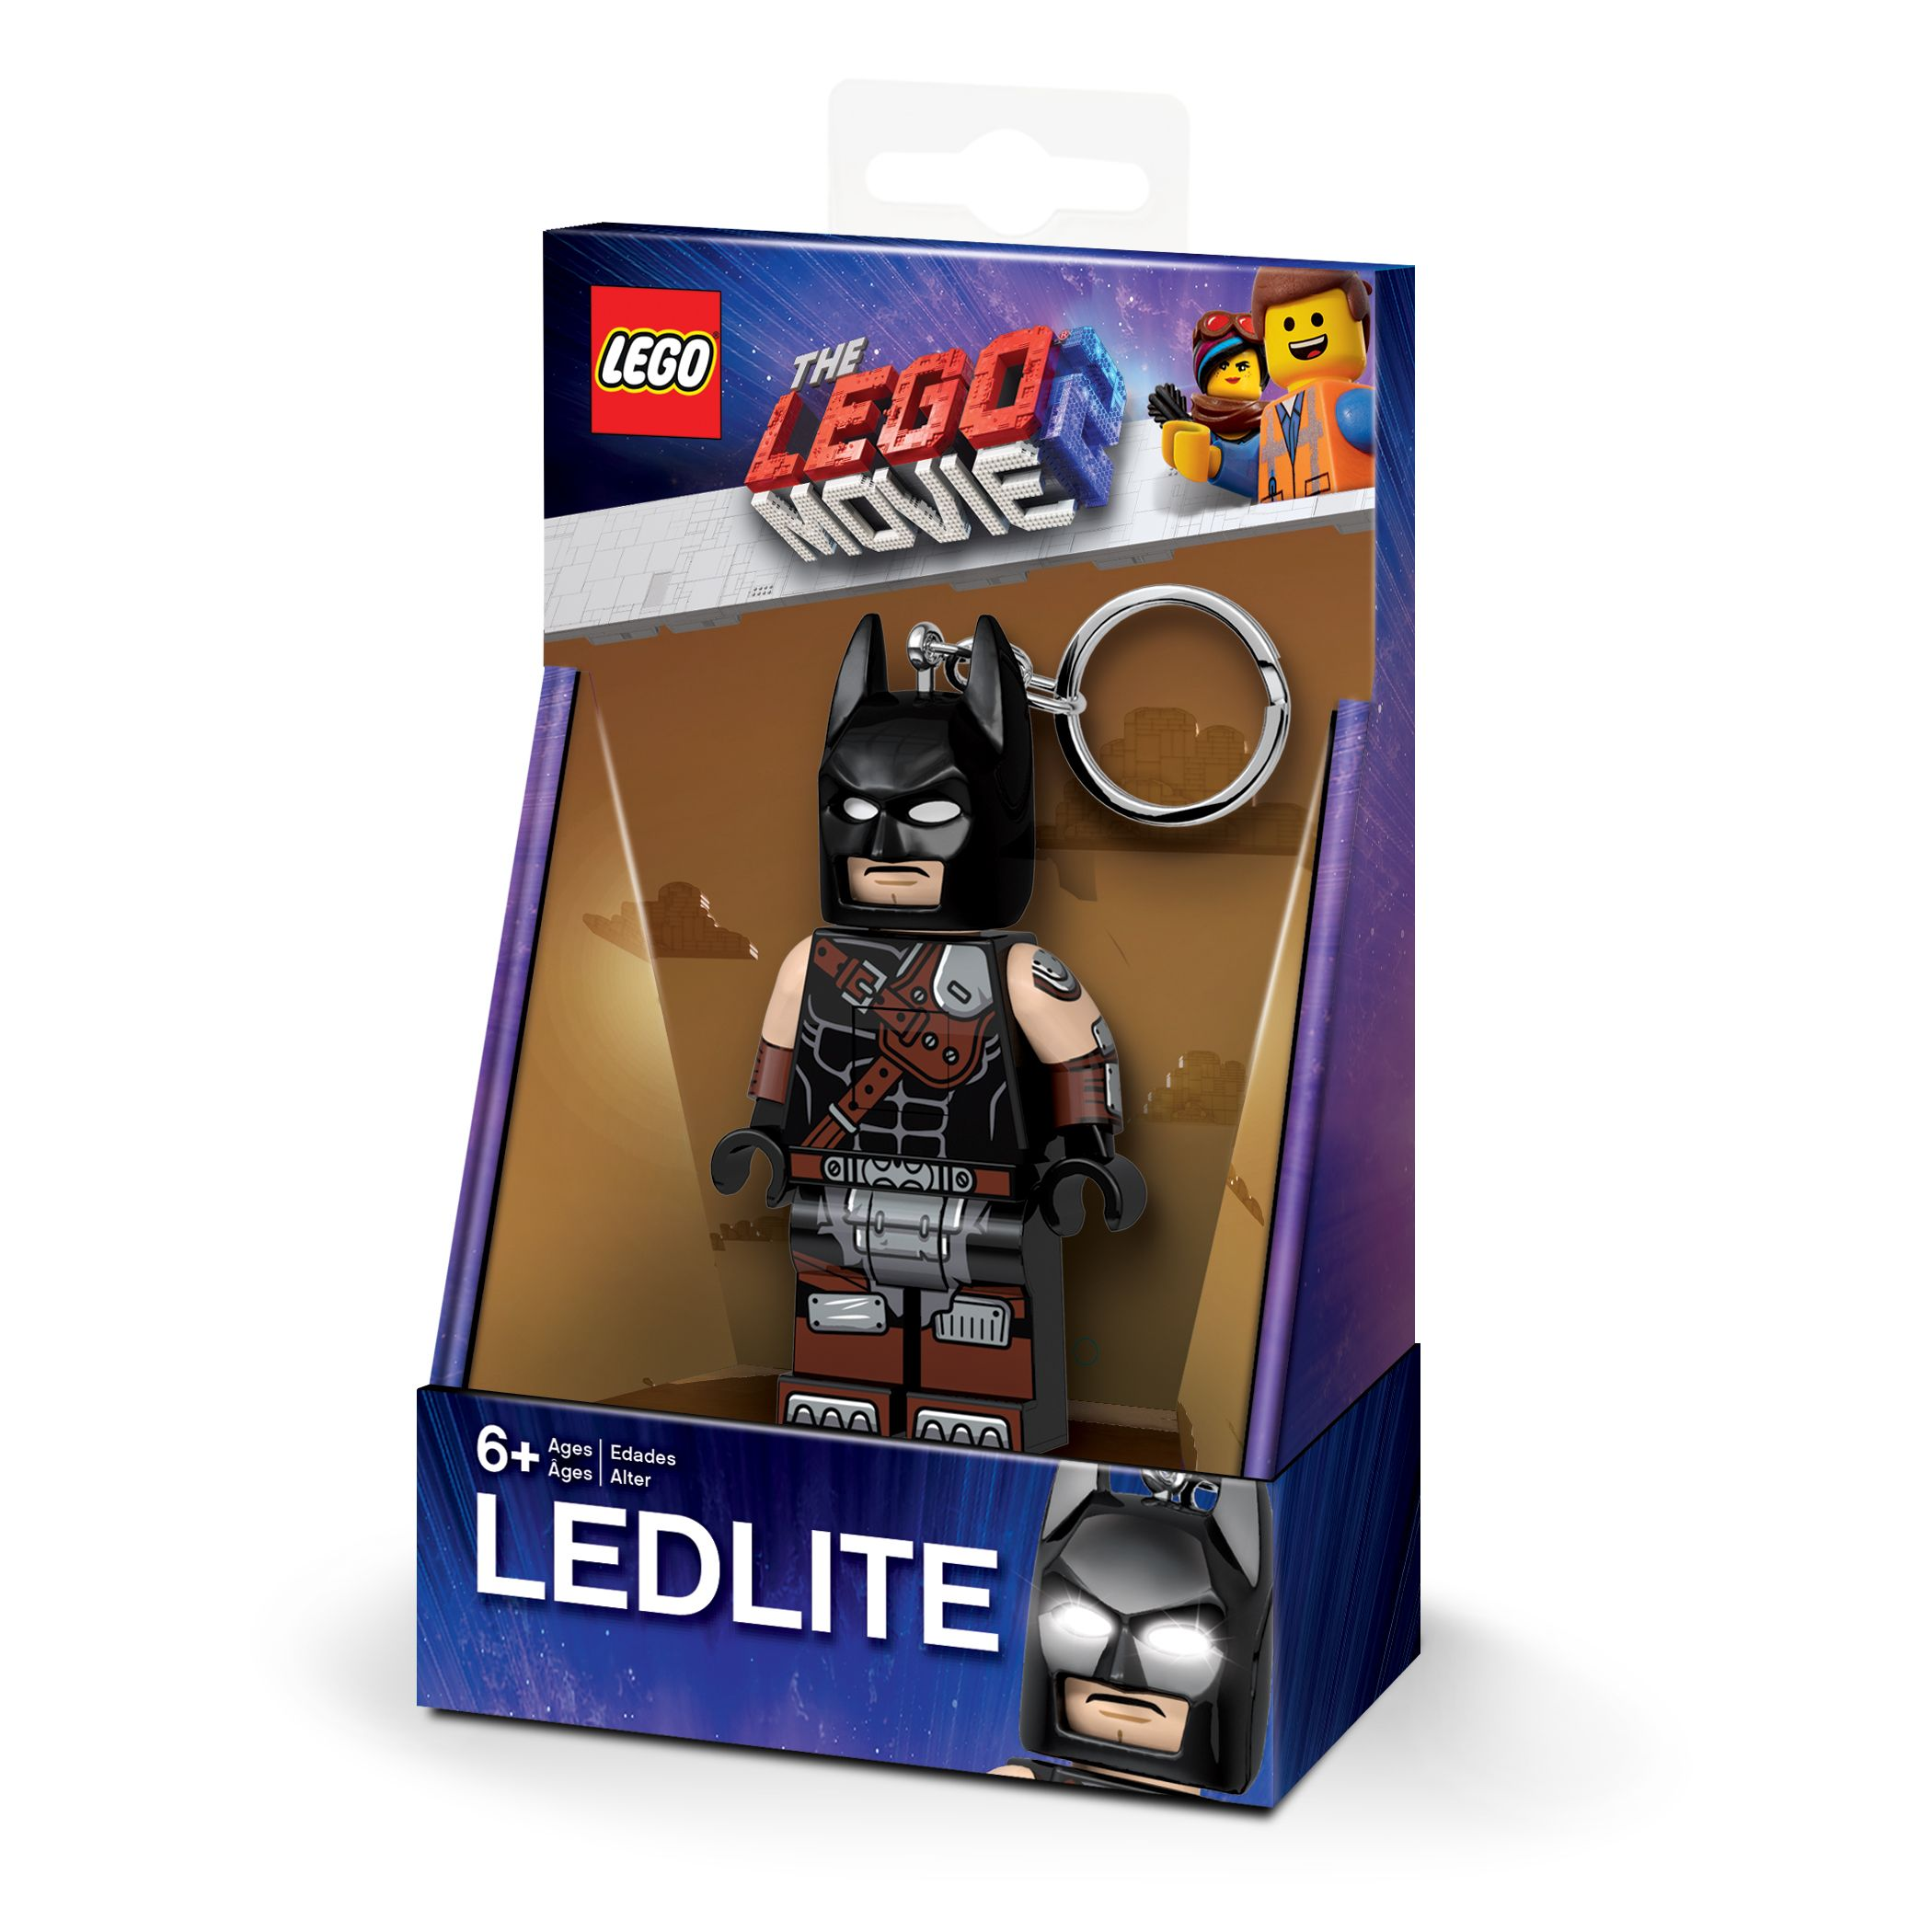 LEGO Gear 5005739 THE LEGO® MOVIE 2™ Batman™ Schlüsselanhänger mit Licht LEGO_5005739_alt1.jpg